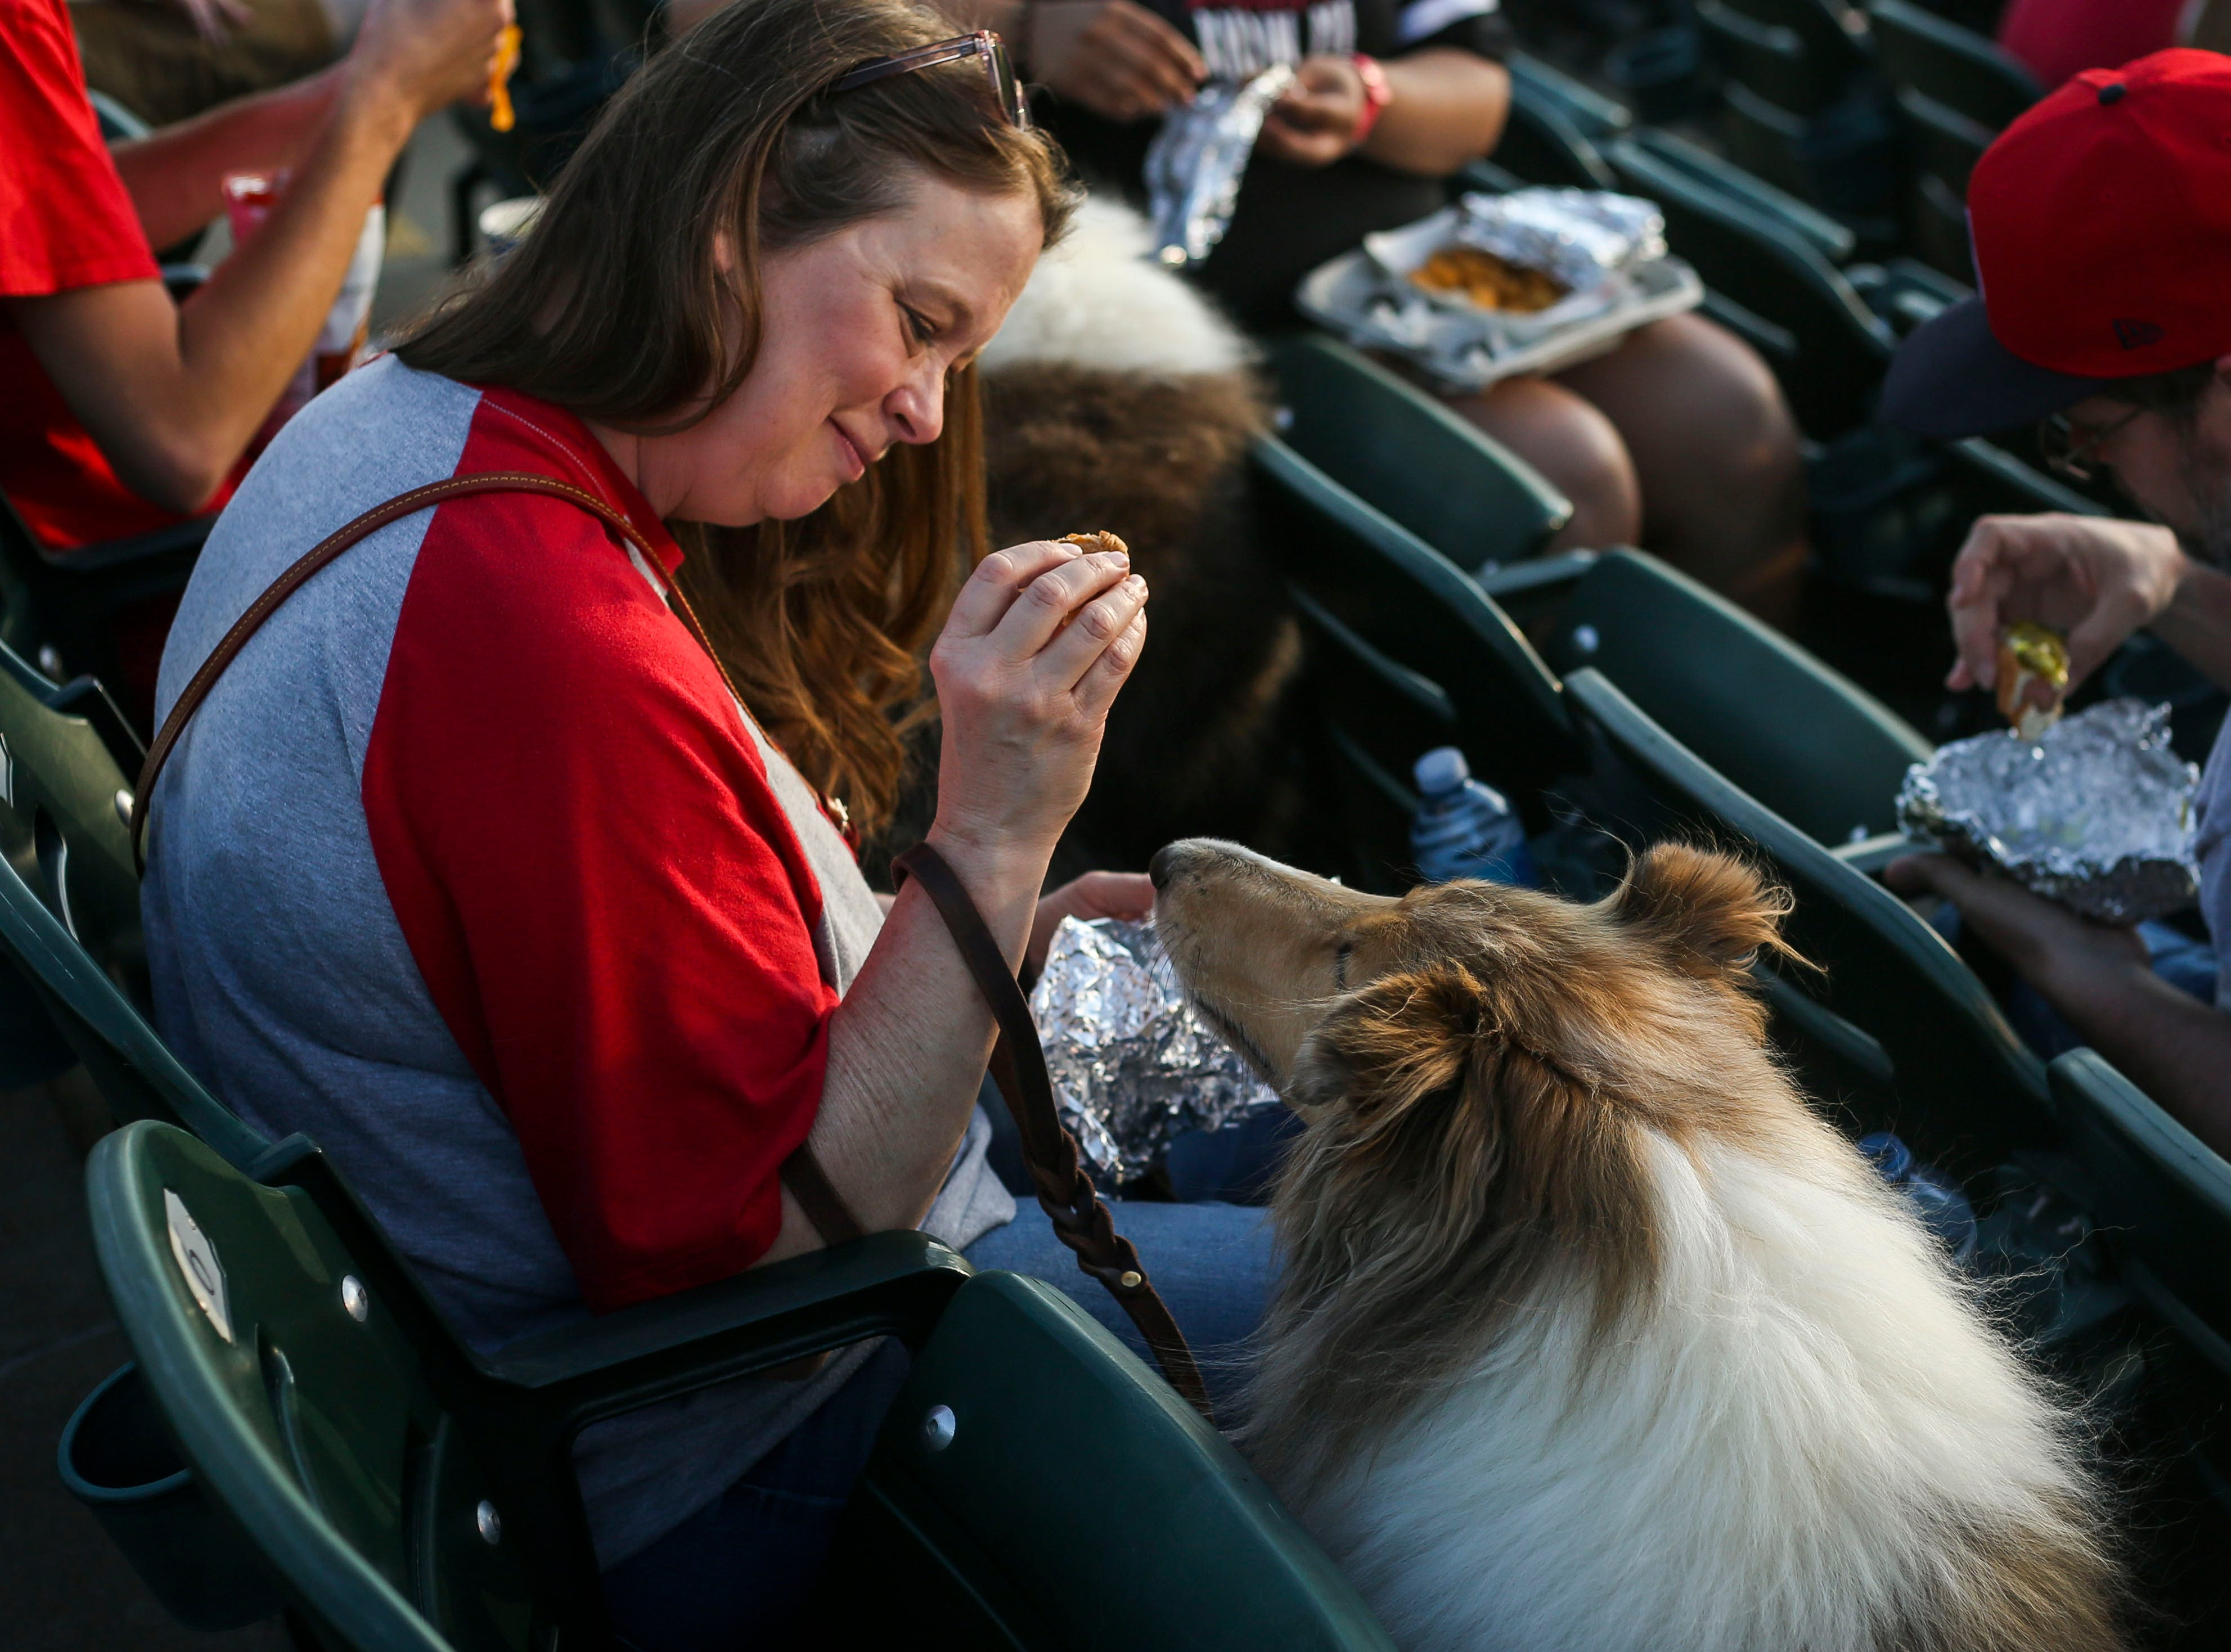 Oli the rough collie is fed part of a hot dog by her owner during the Louisville Bats v. Syracuse Mets game during Dog Day Nights at Louisville Slugger Field in downtown Louisville, Ky. on Tuesday, May 7, 2019.